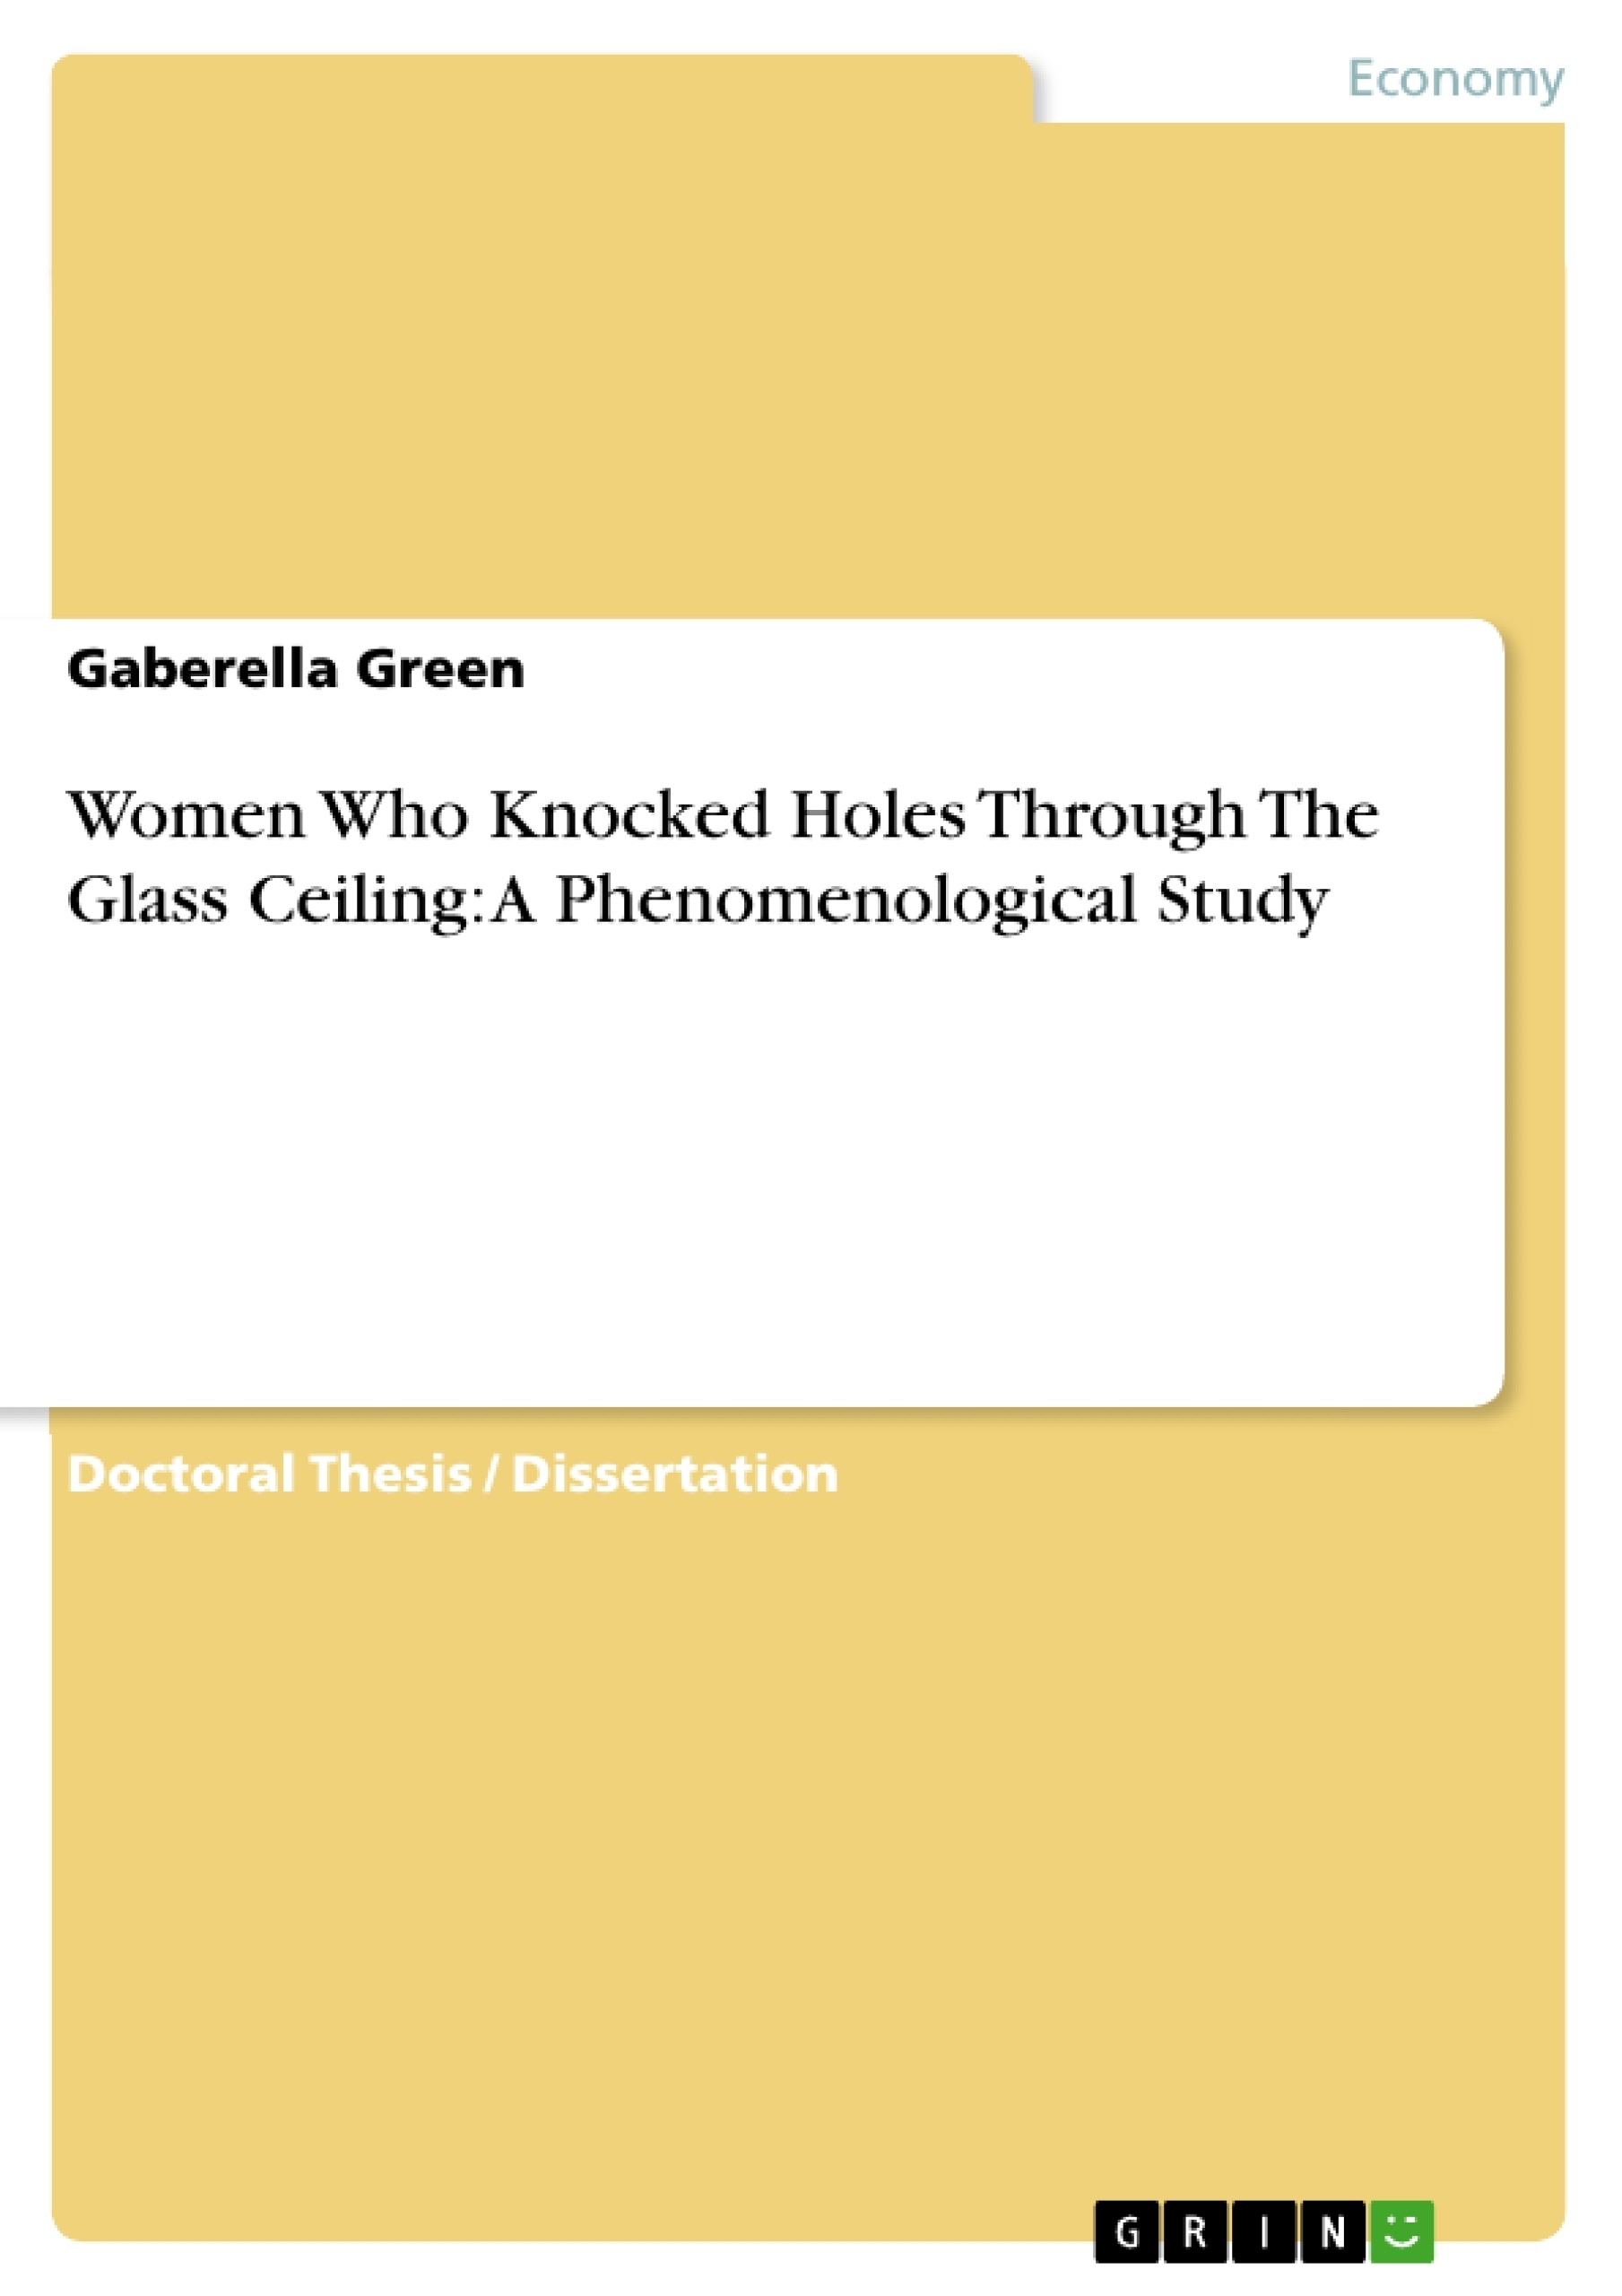 term paper glass ceiling